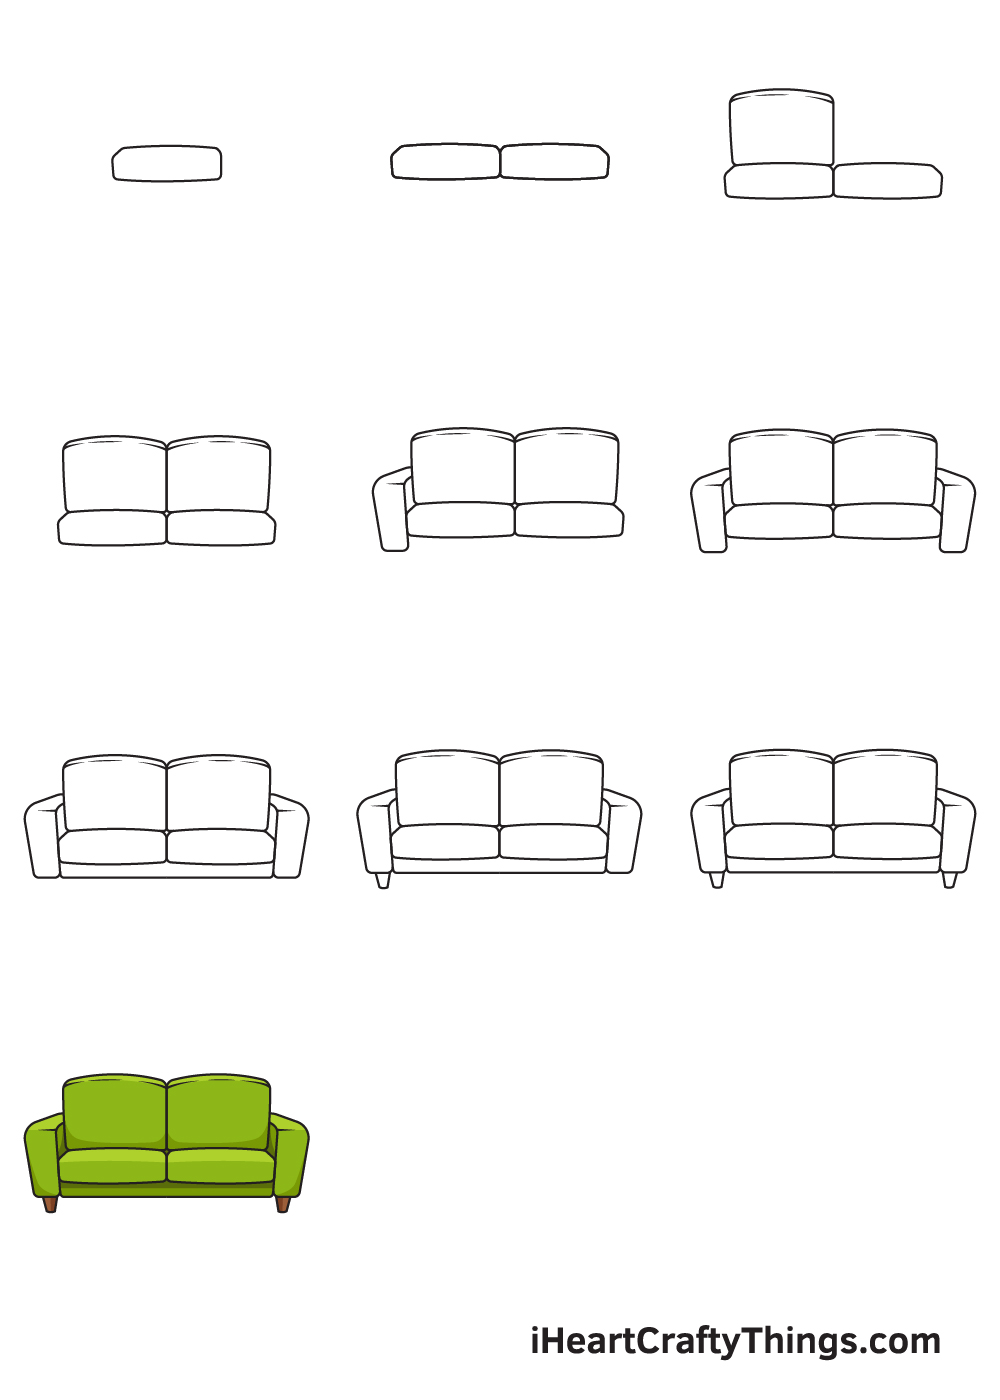 Drawing Couch in 9 Easy Steps